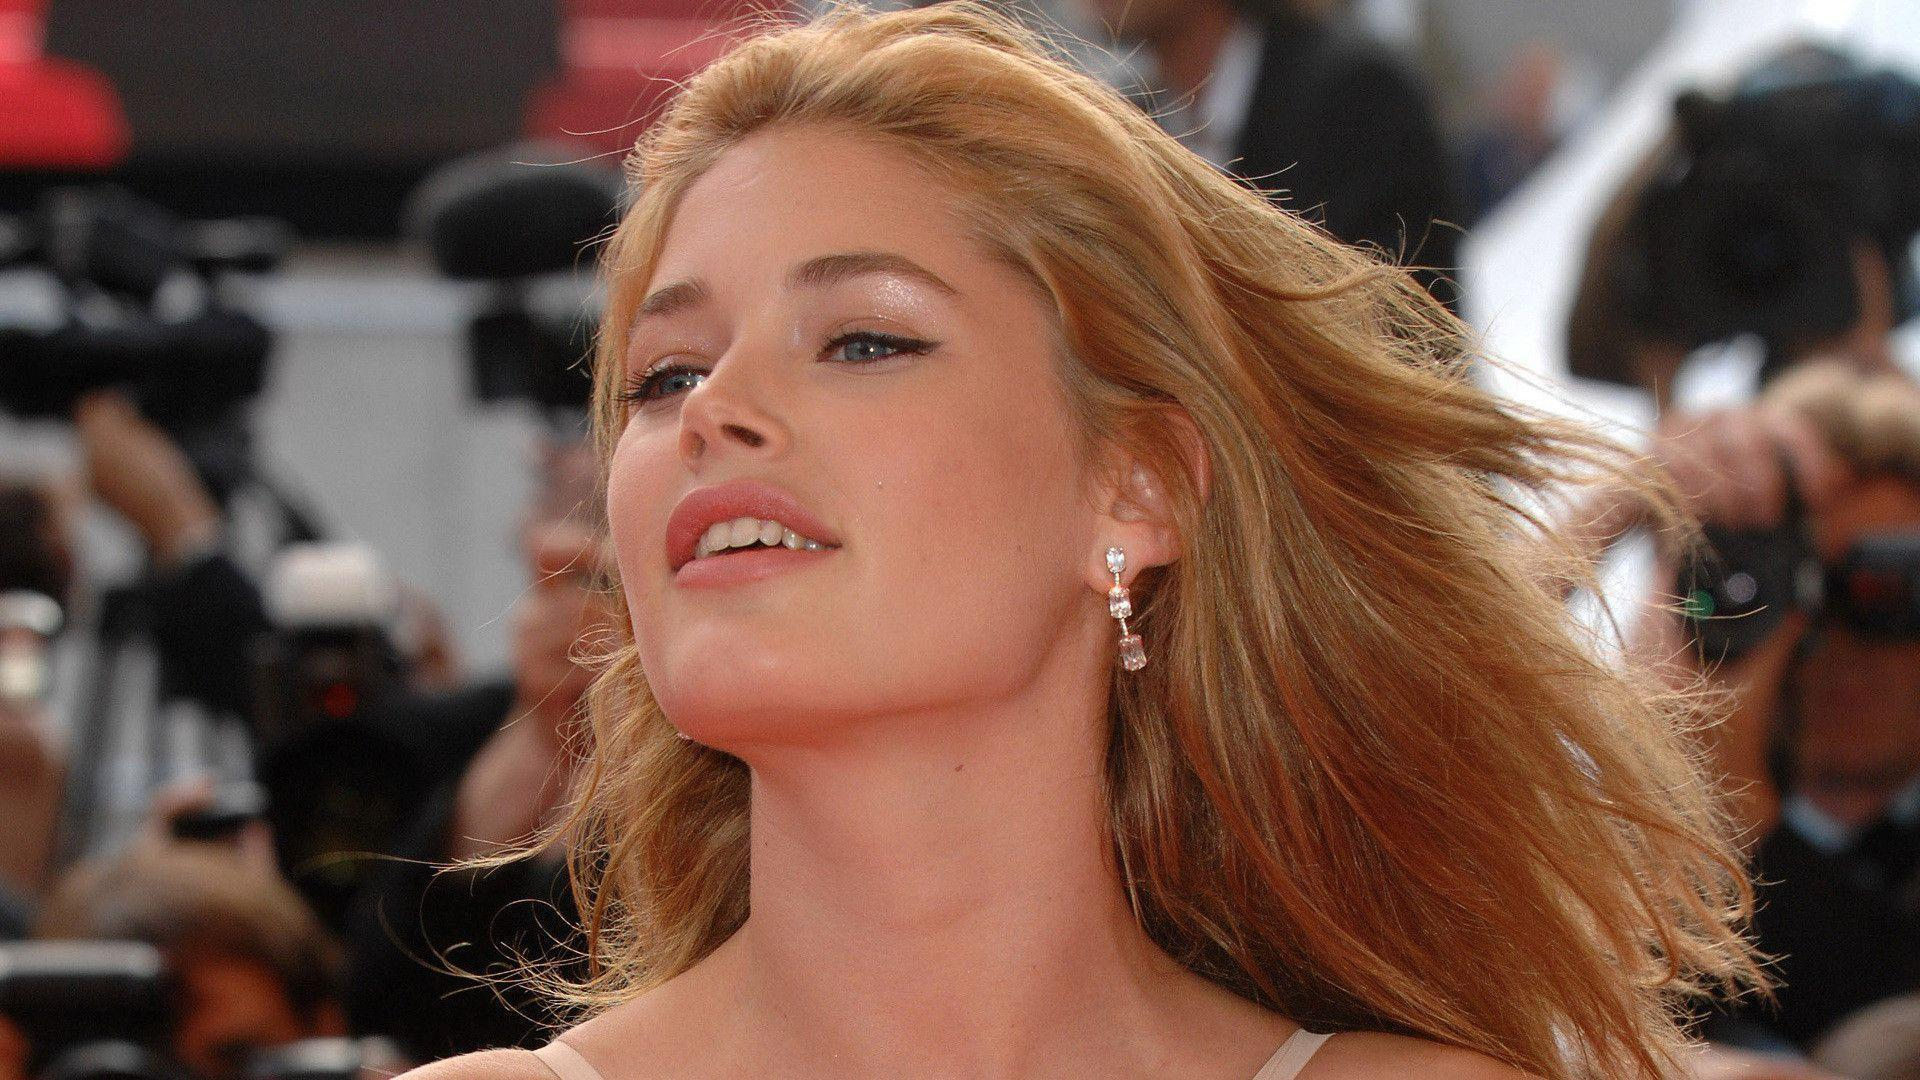 Doutzen Kroes 1920x1080 Girl Wallpaper - #